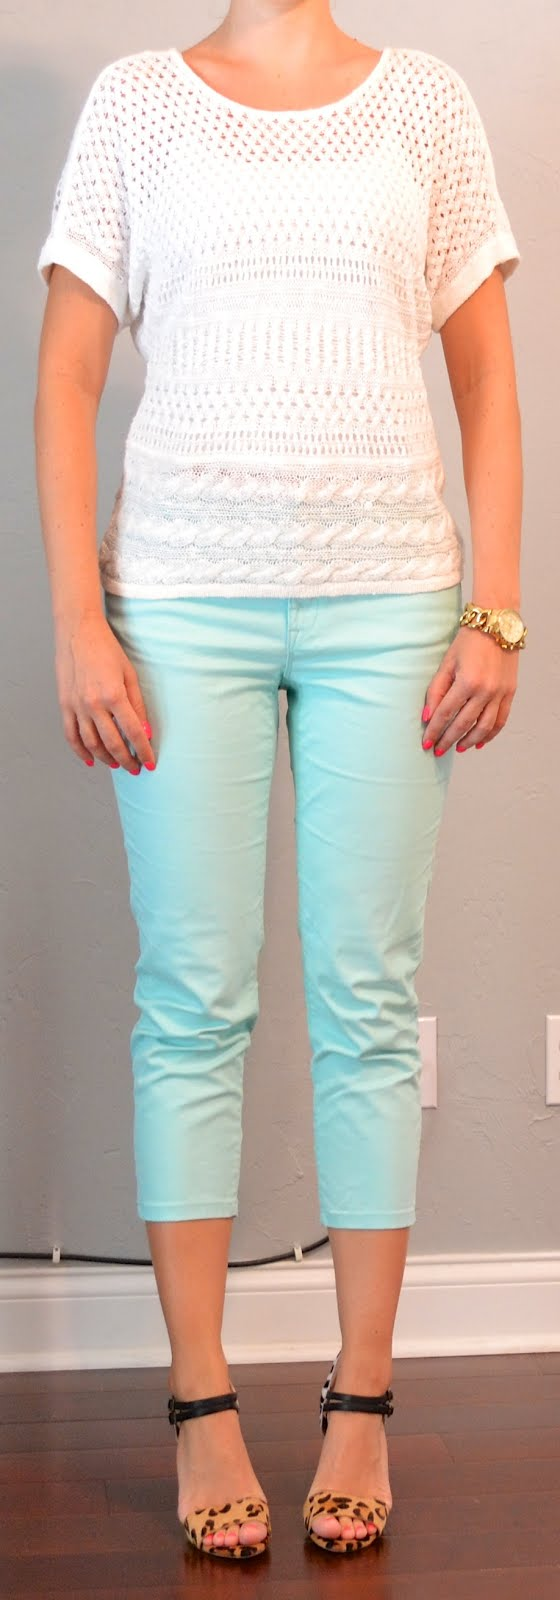 f11d3204cdc Mint cropped jeans – Loft Shoes  Multi-colored leopard heels – ShoeMint.  Accessories  Gold link watch -Michael Kors